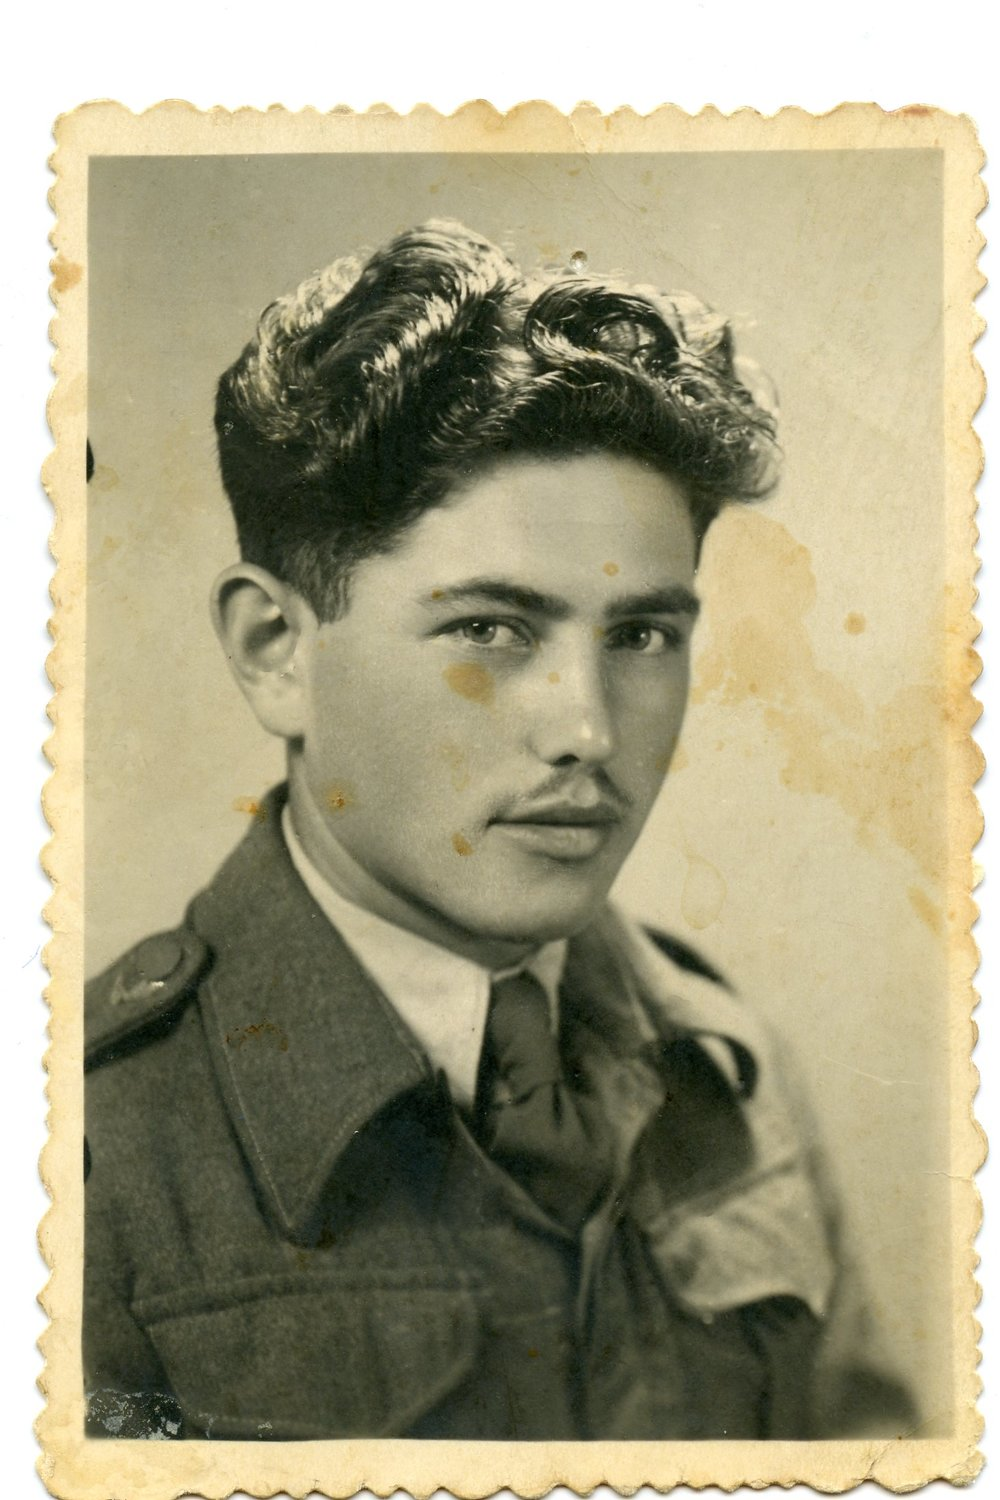 1949 - Aron in the Israeli Army